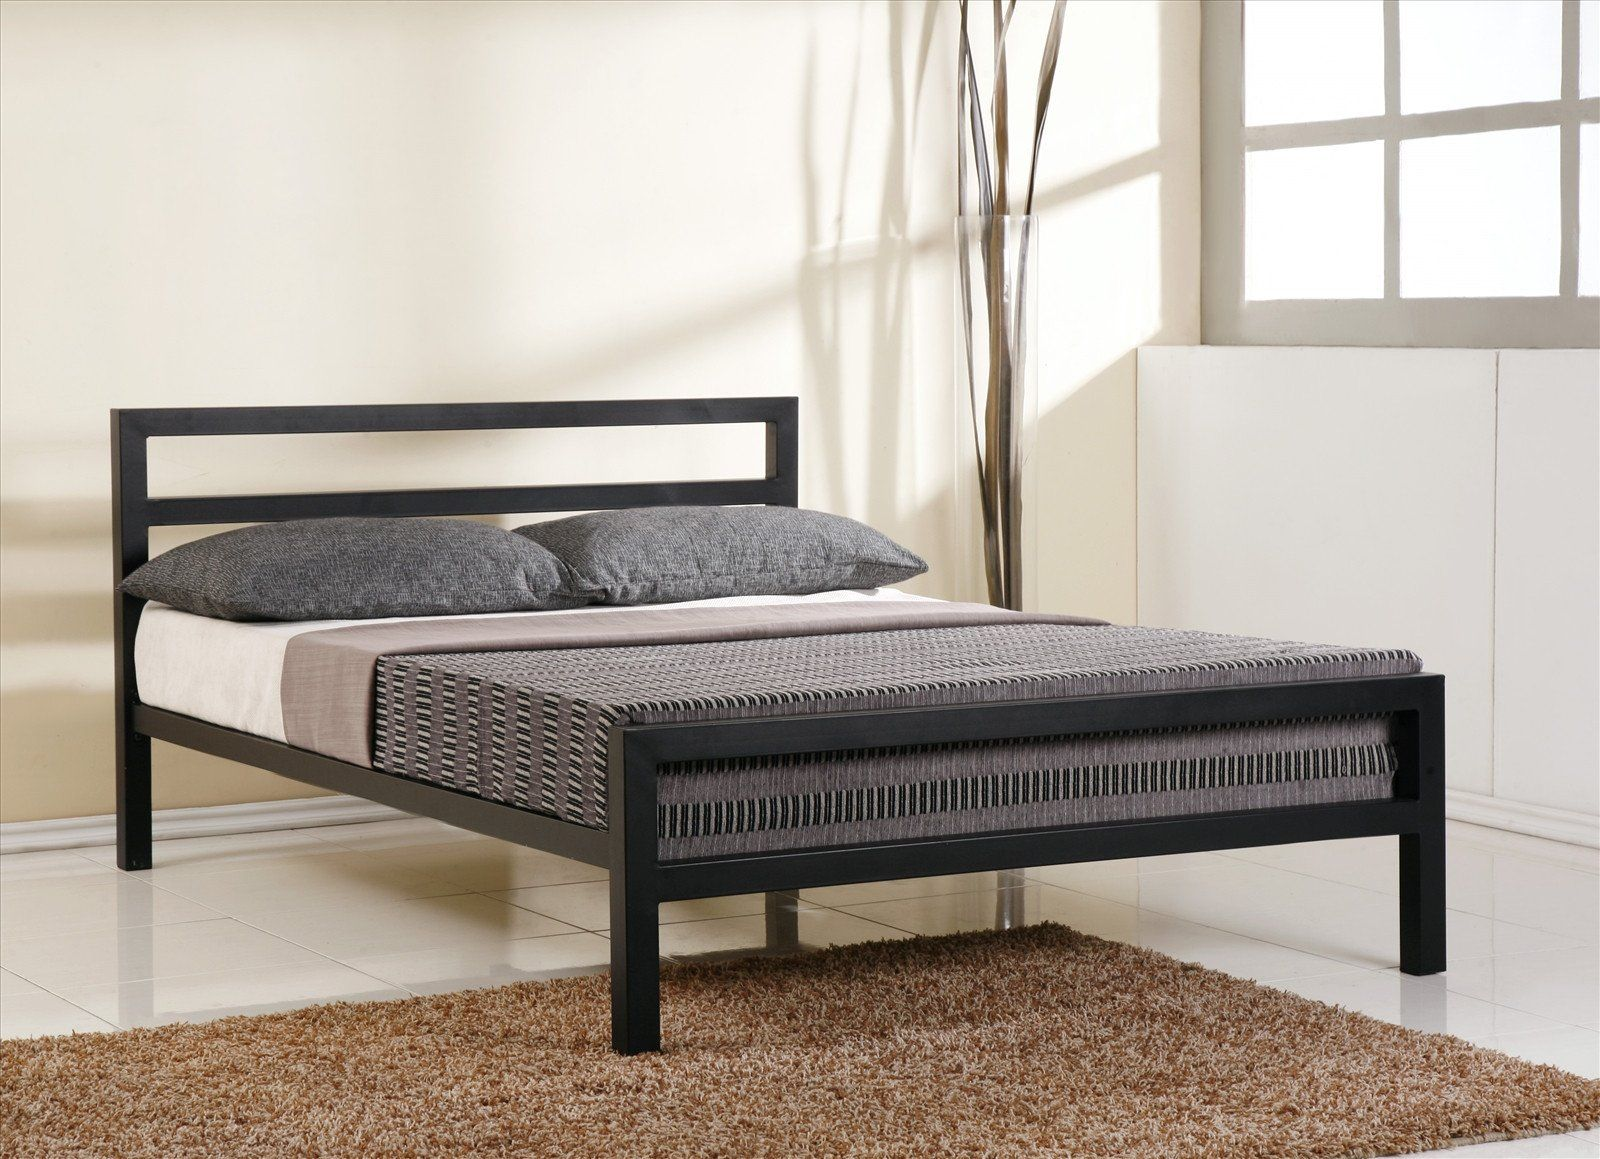 Extra Strong Metal Block Bed with Mesh Base Reinforced